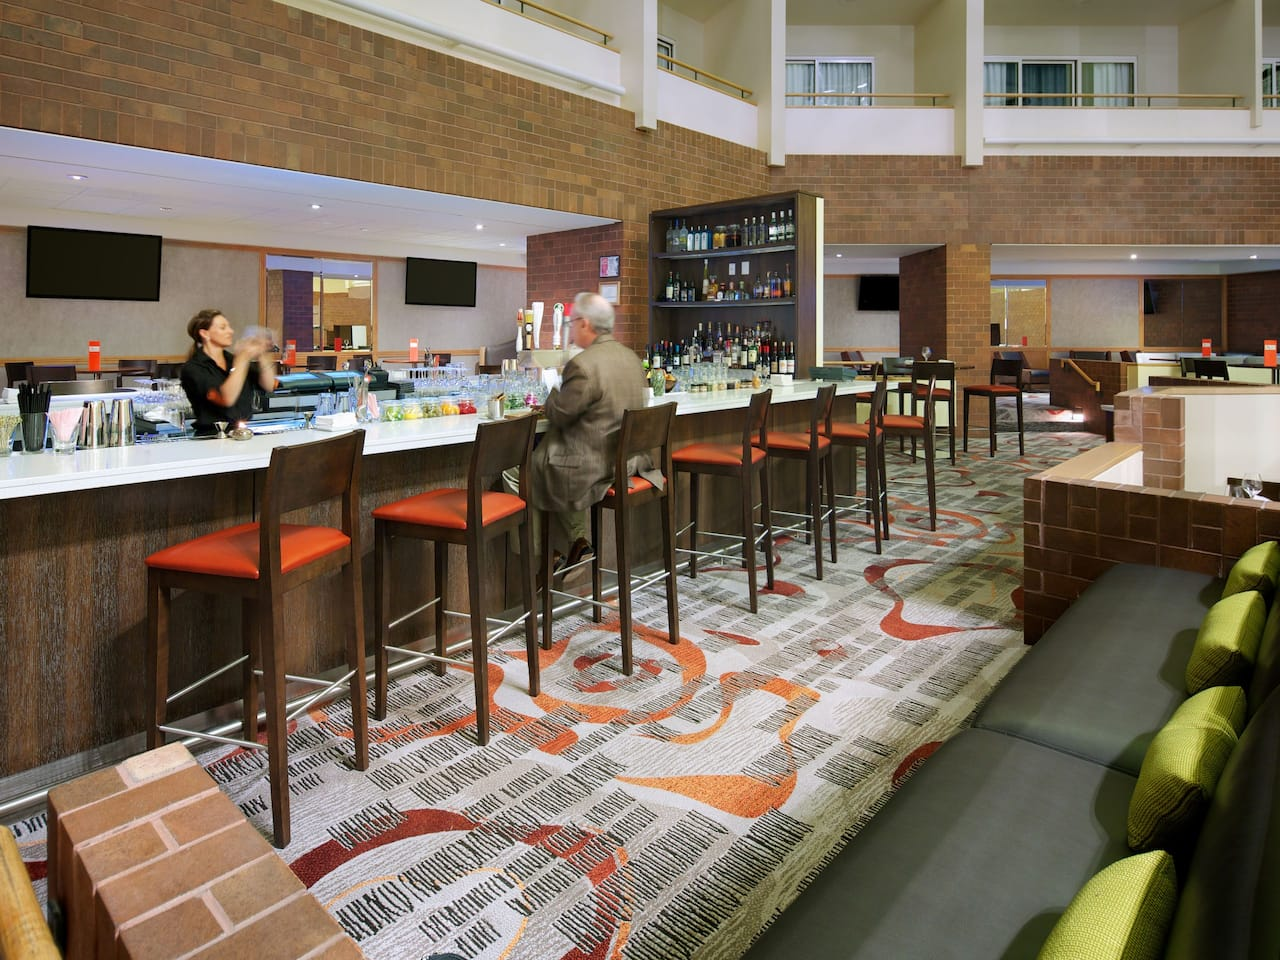 Hyatt Regency Princeton Artisan Kitchen and Lounge Restaurant Image